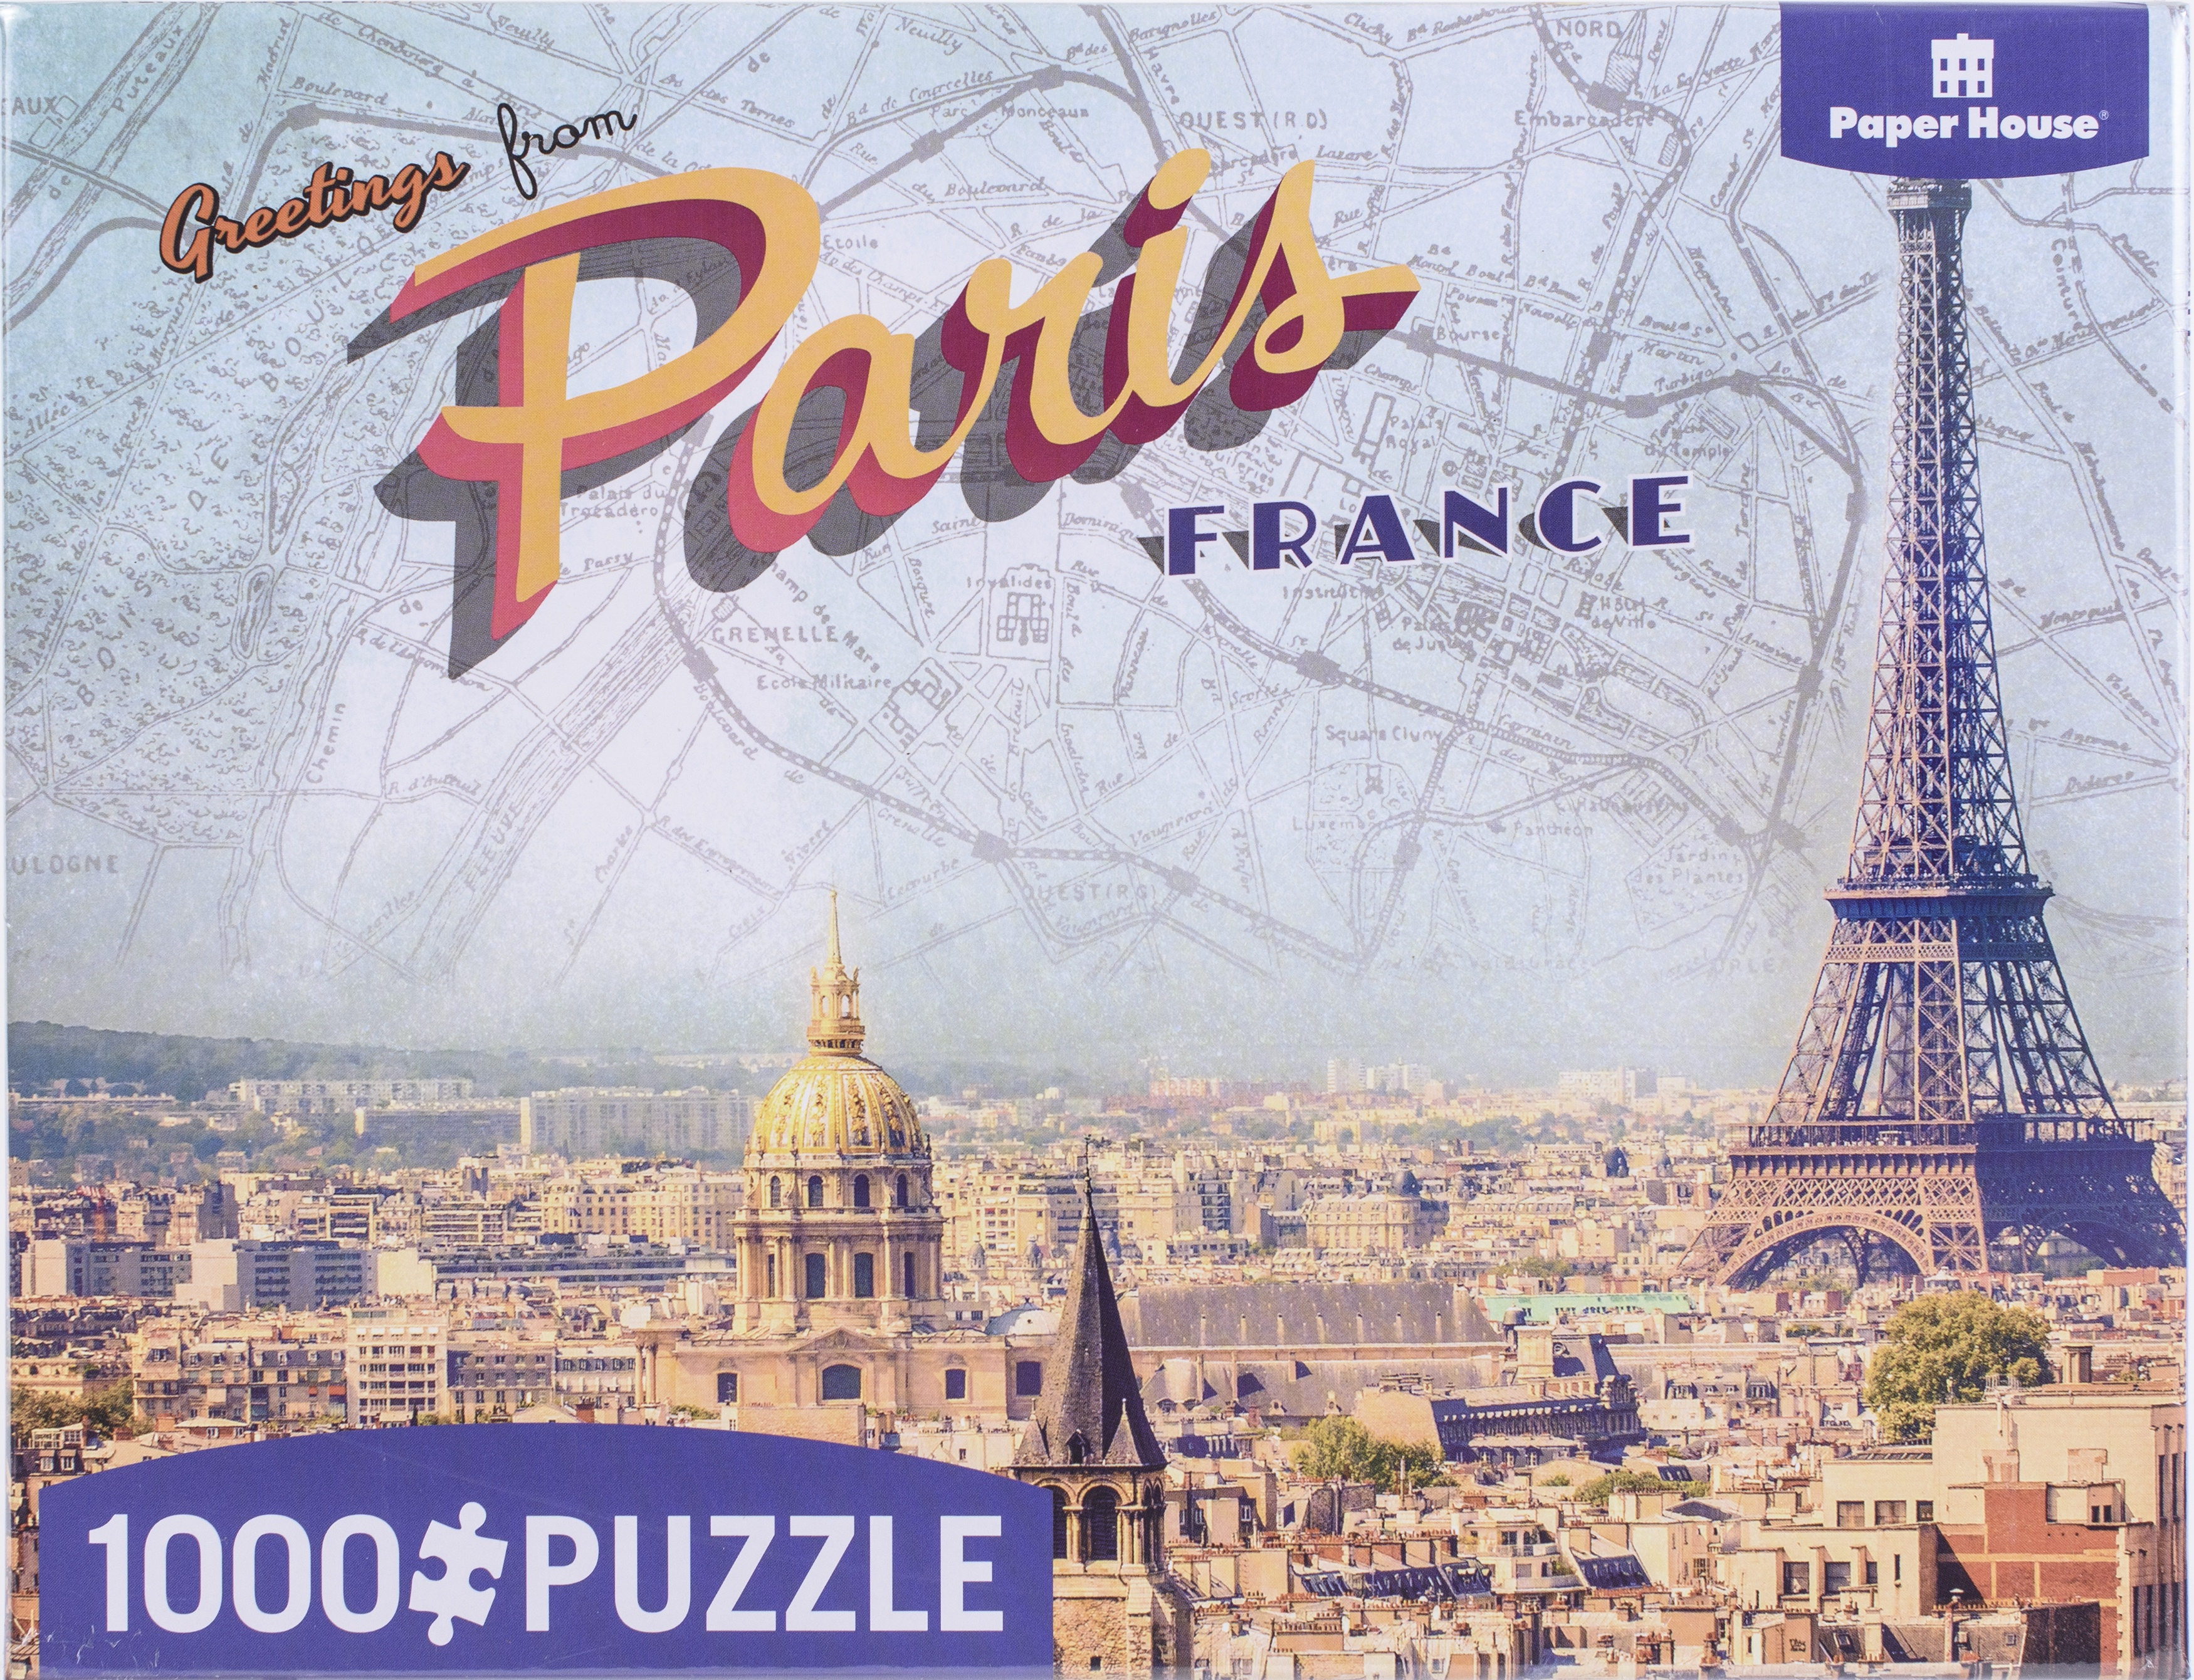 Playhouse Puzzle 1000 Pieces - Greetings From Paris